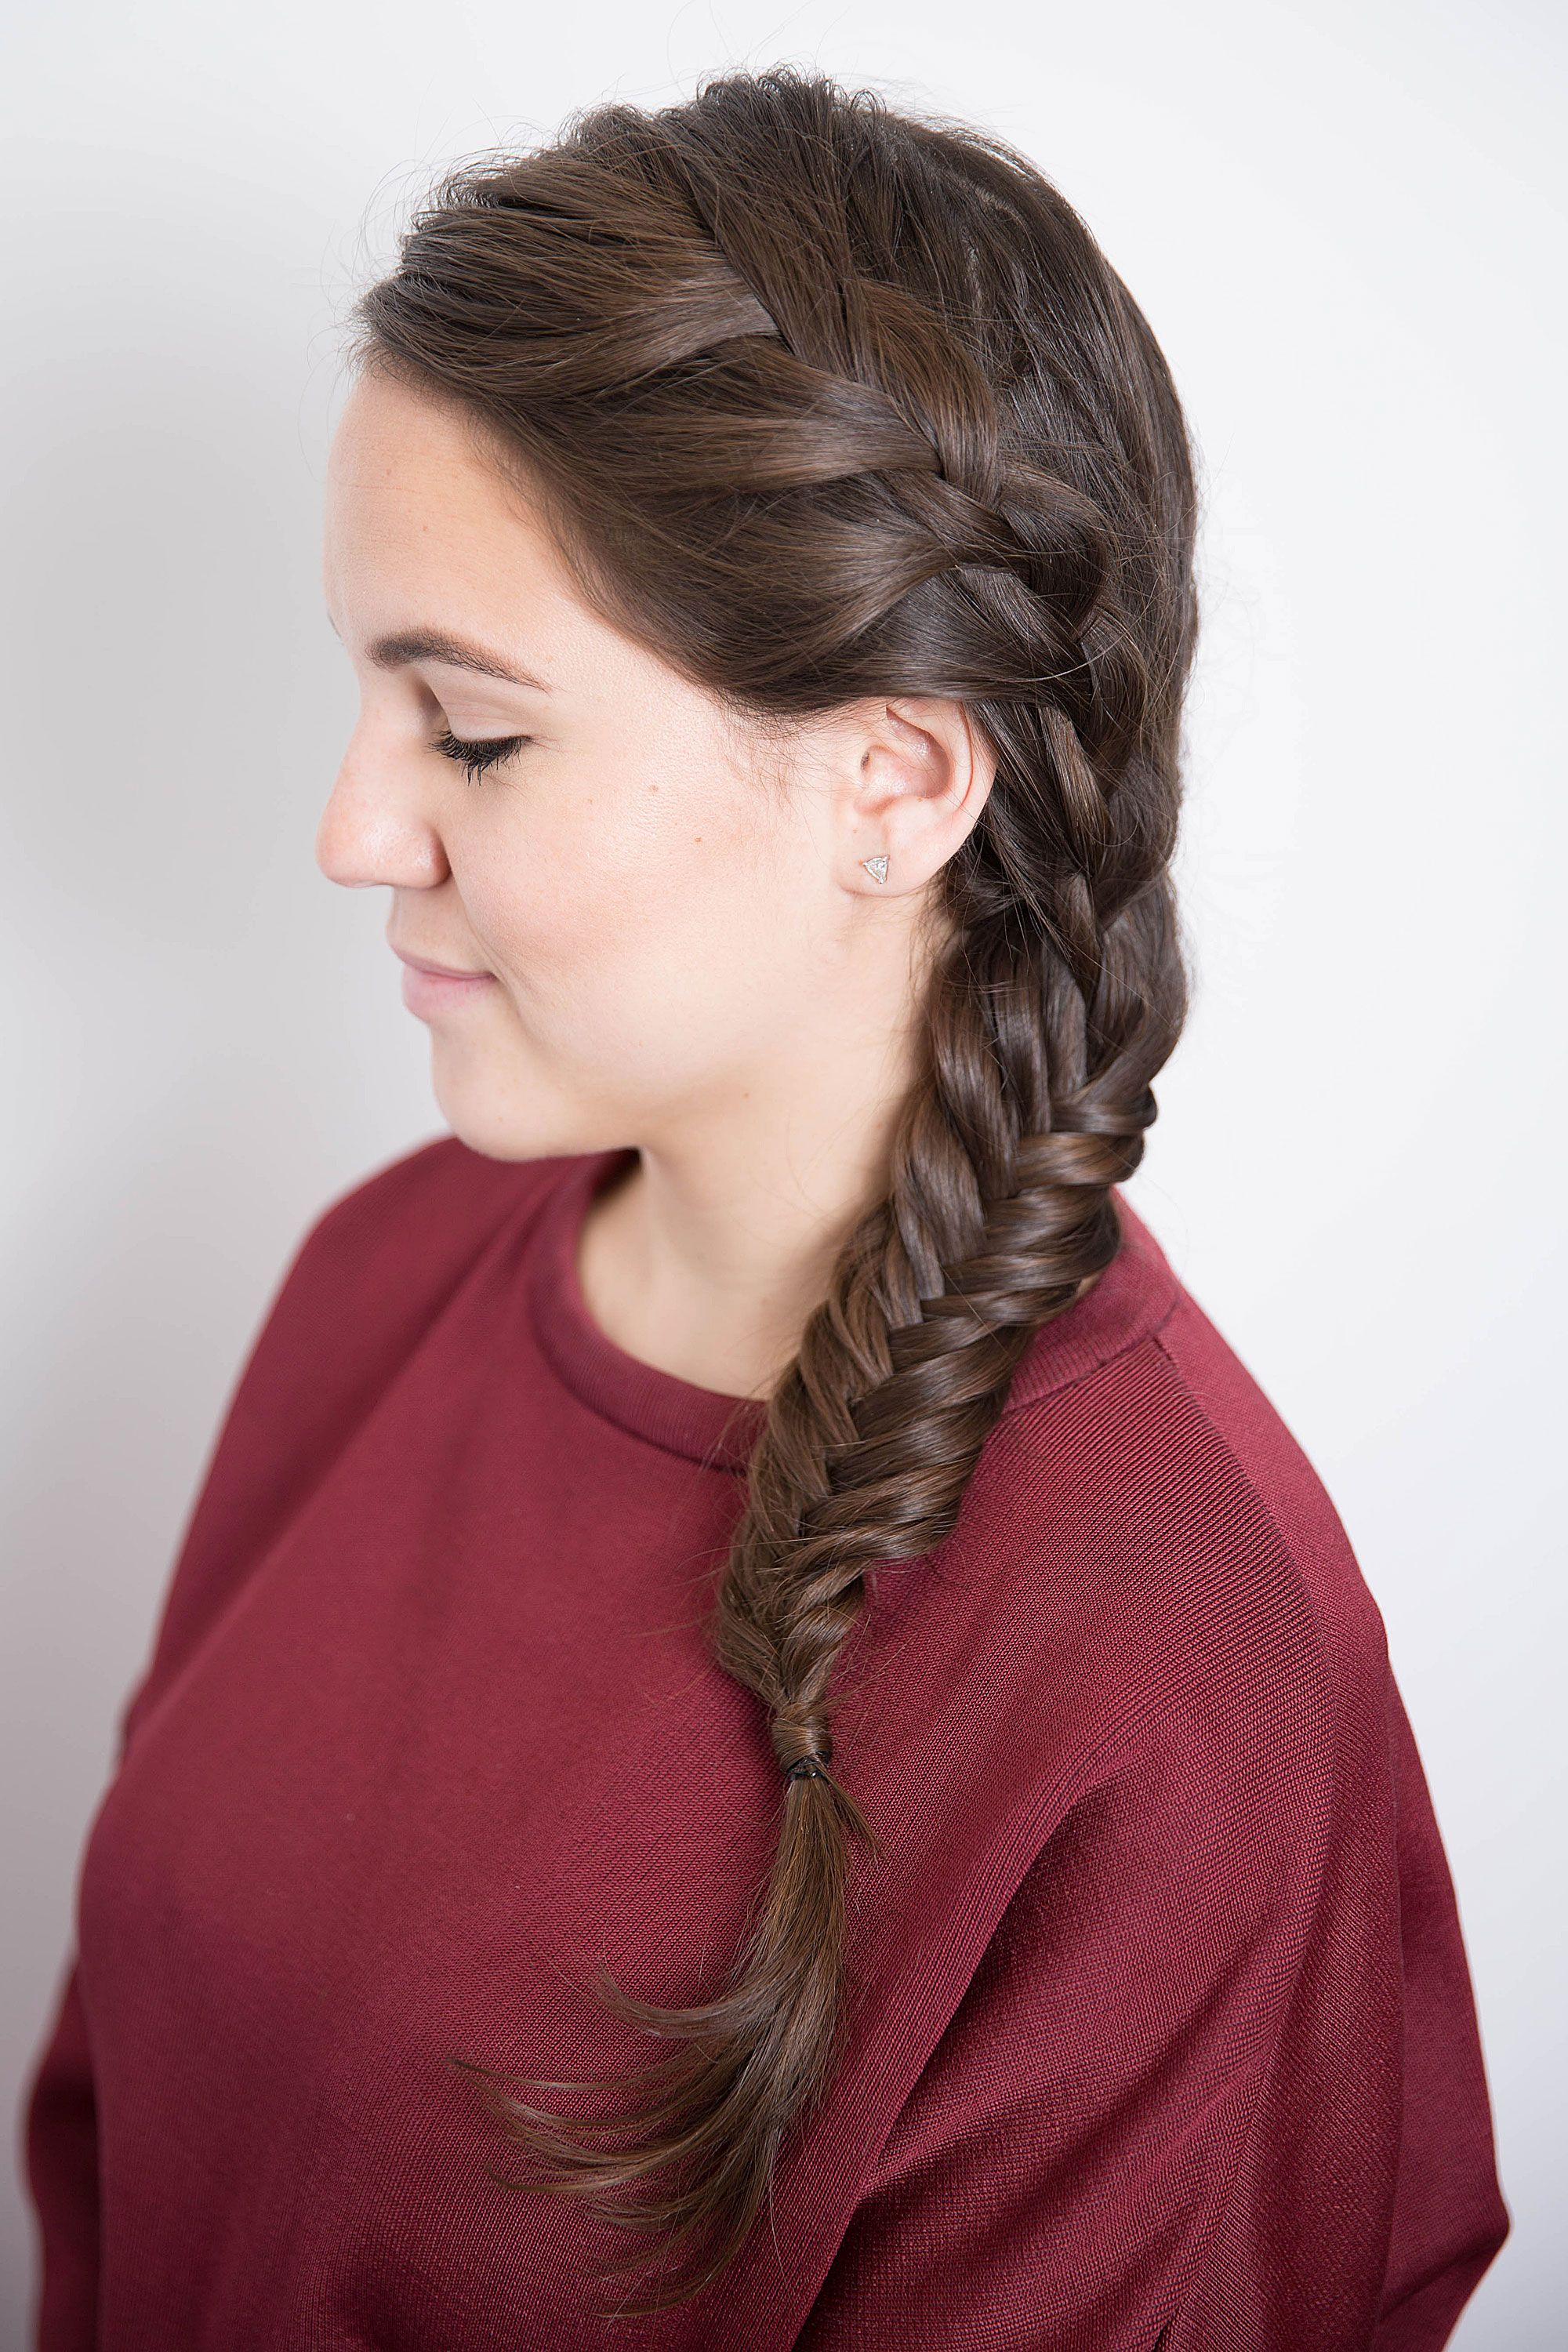 17 Braided Hairstyles With GIFS , How to Do Every Type of Braid